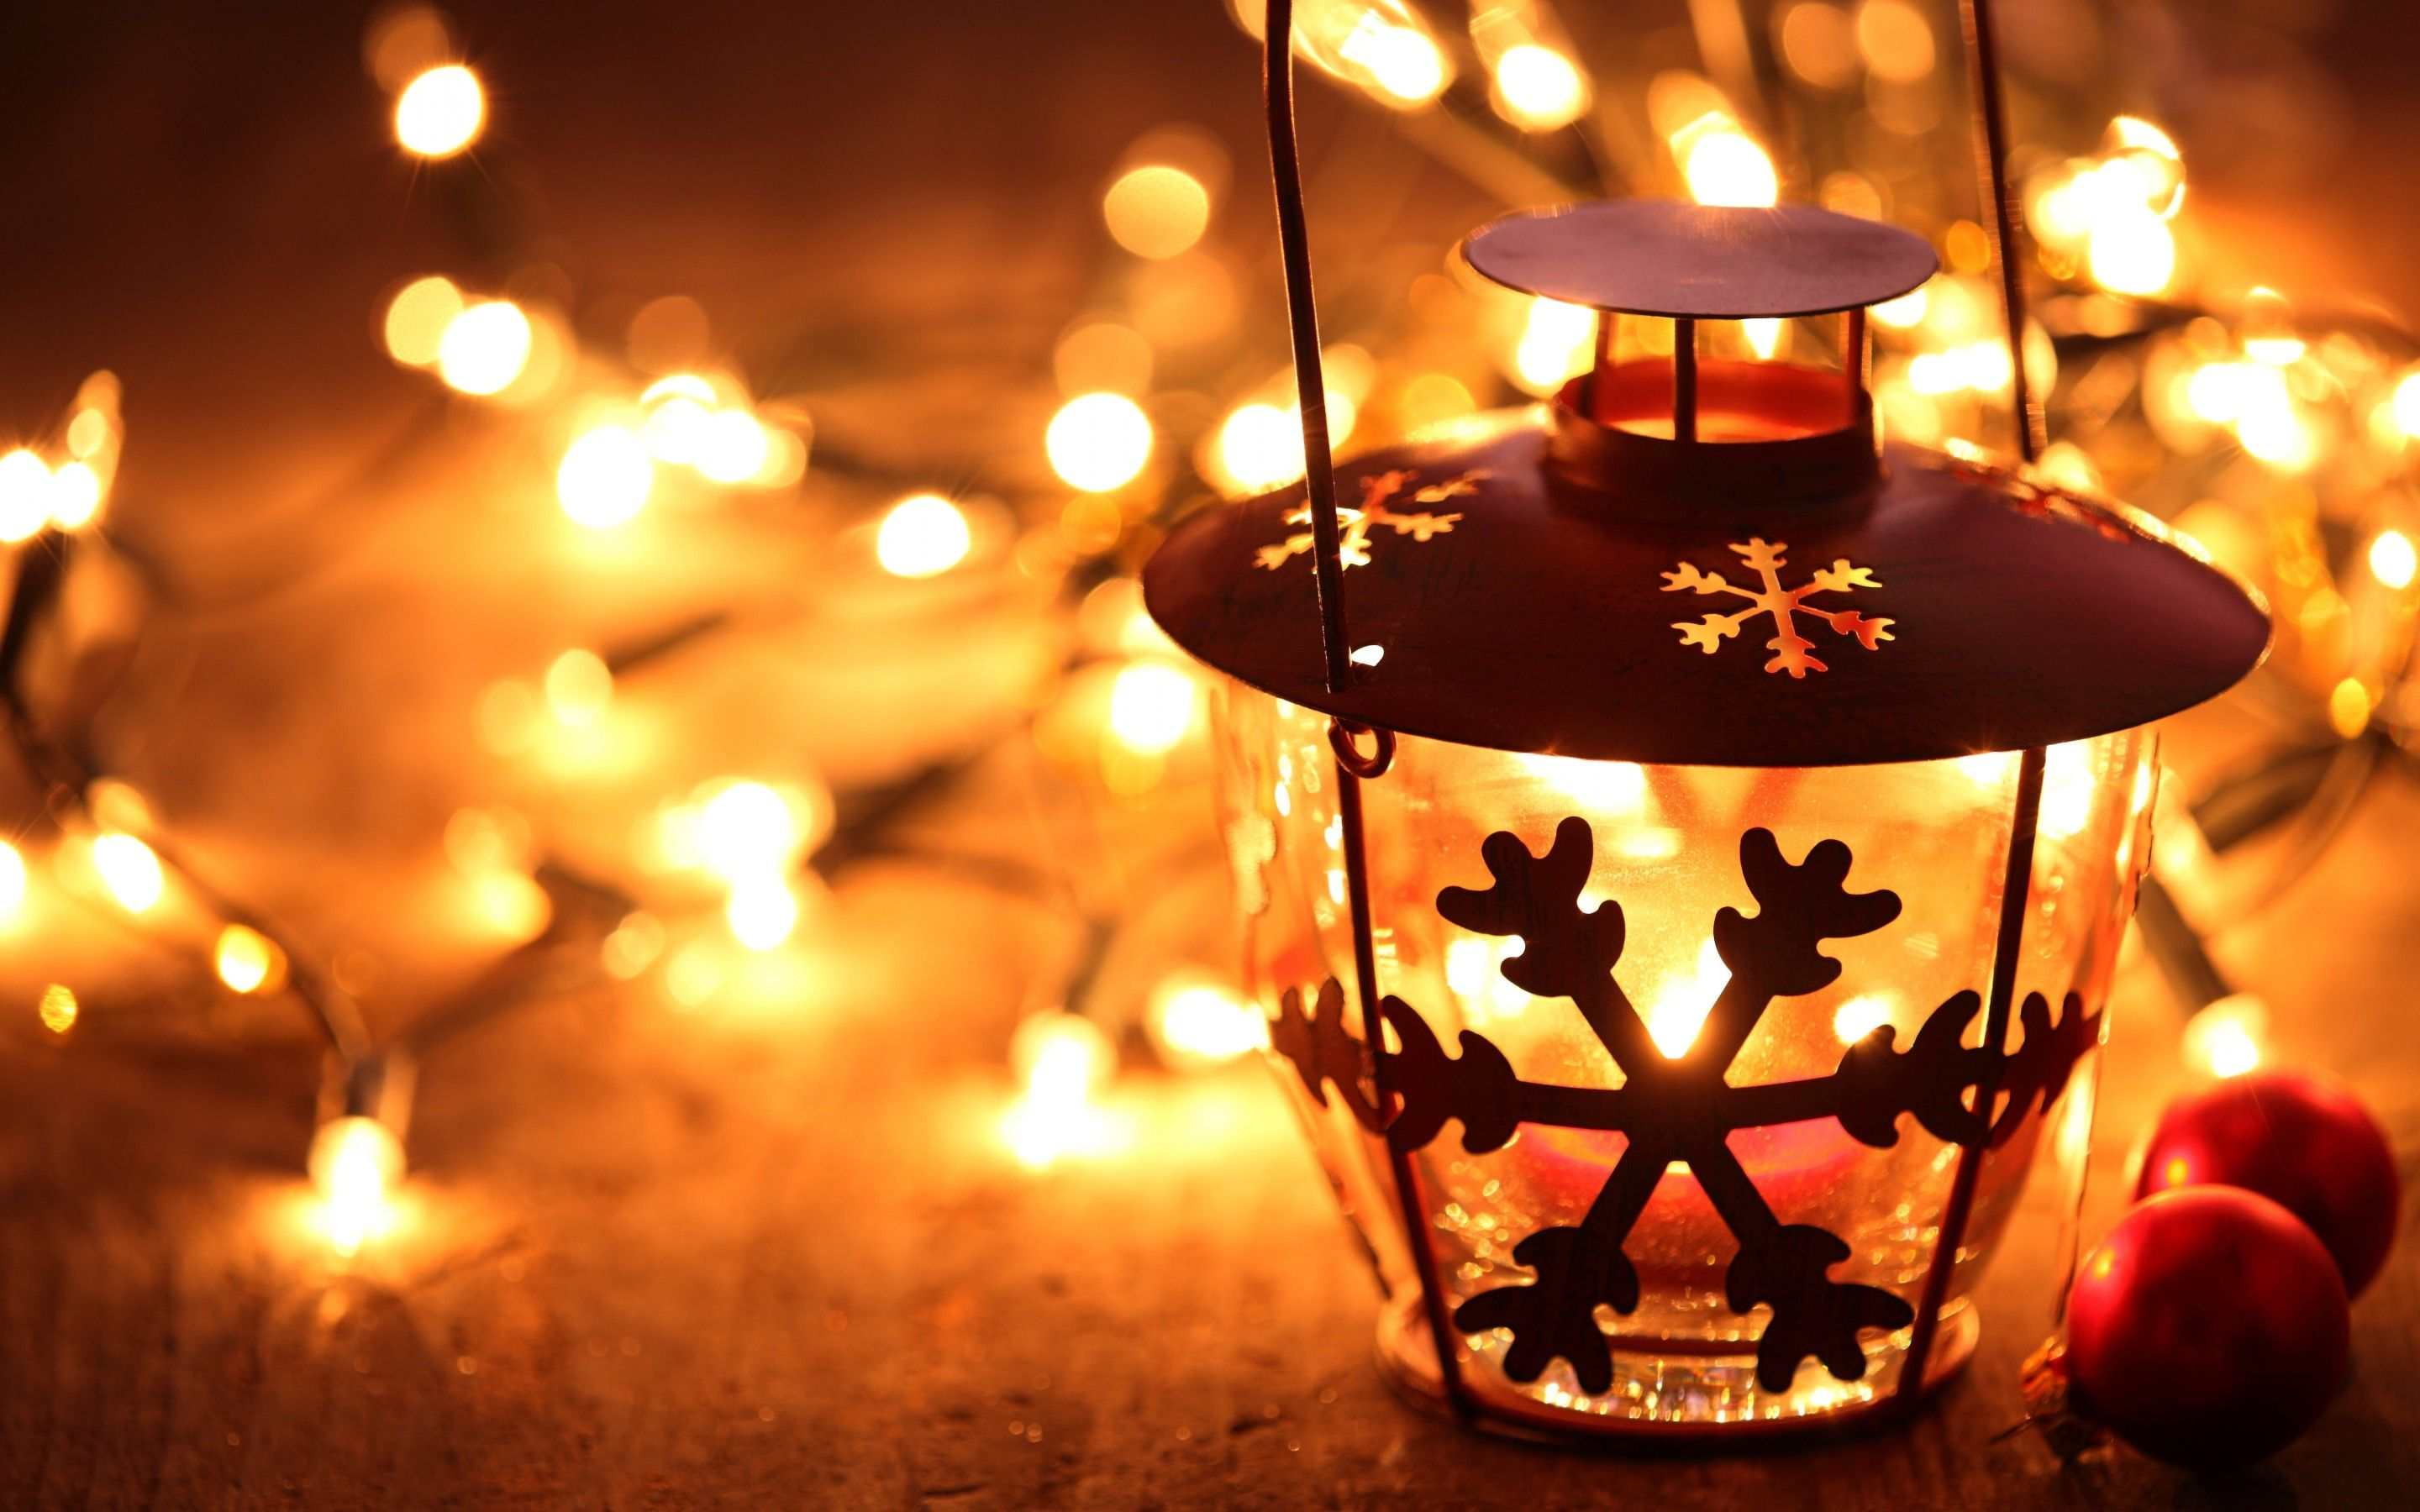 Candle Art Hd Wallpaper: Snowflake Lantern On Wooden Floor With Yellow Candle Light